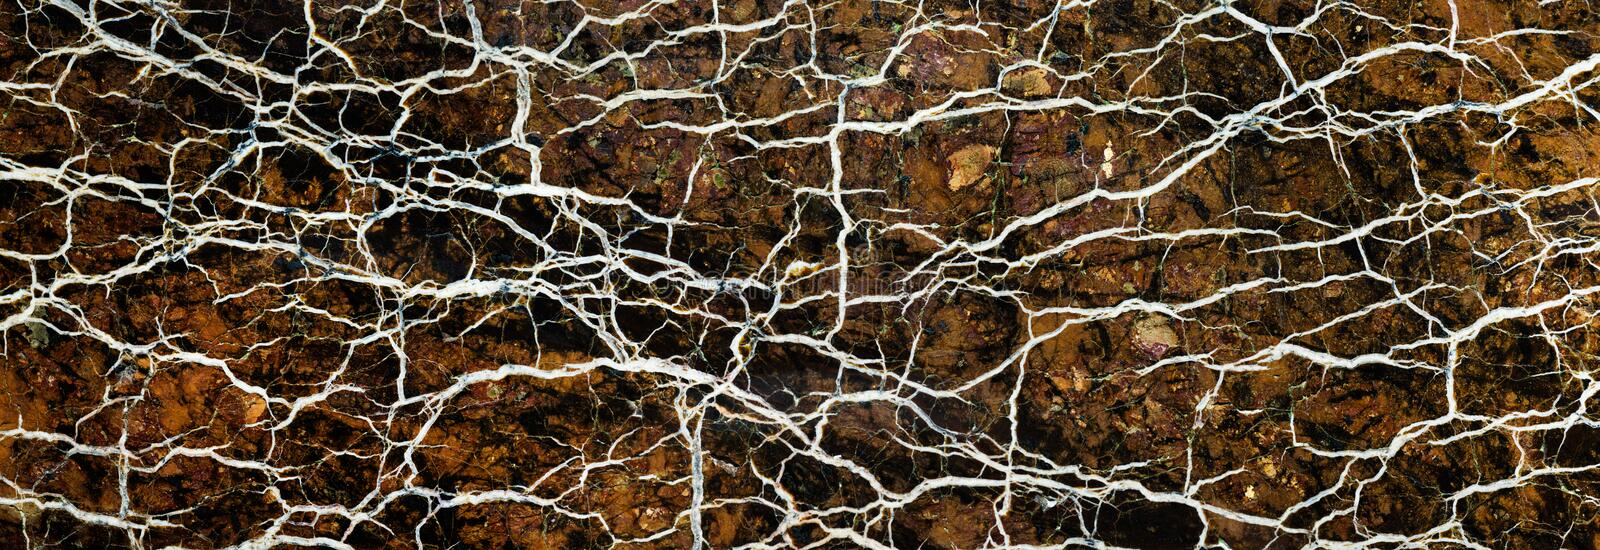 Abstract mineral texture stock image